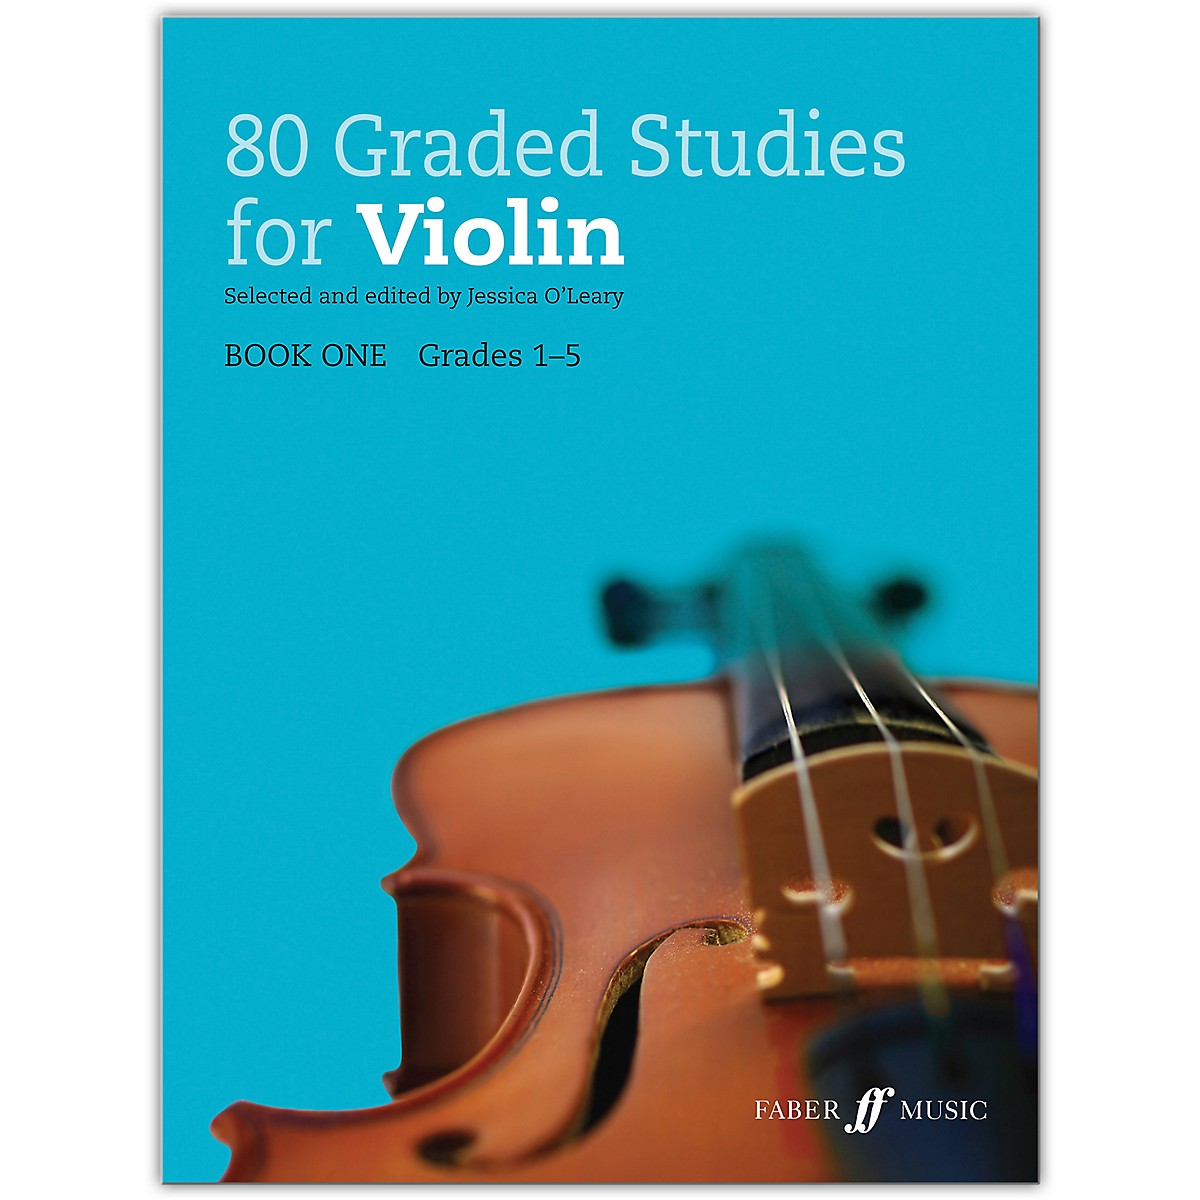 Faber Music LTD 80 Graded Studies for Violin, Book One Grades 1-5